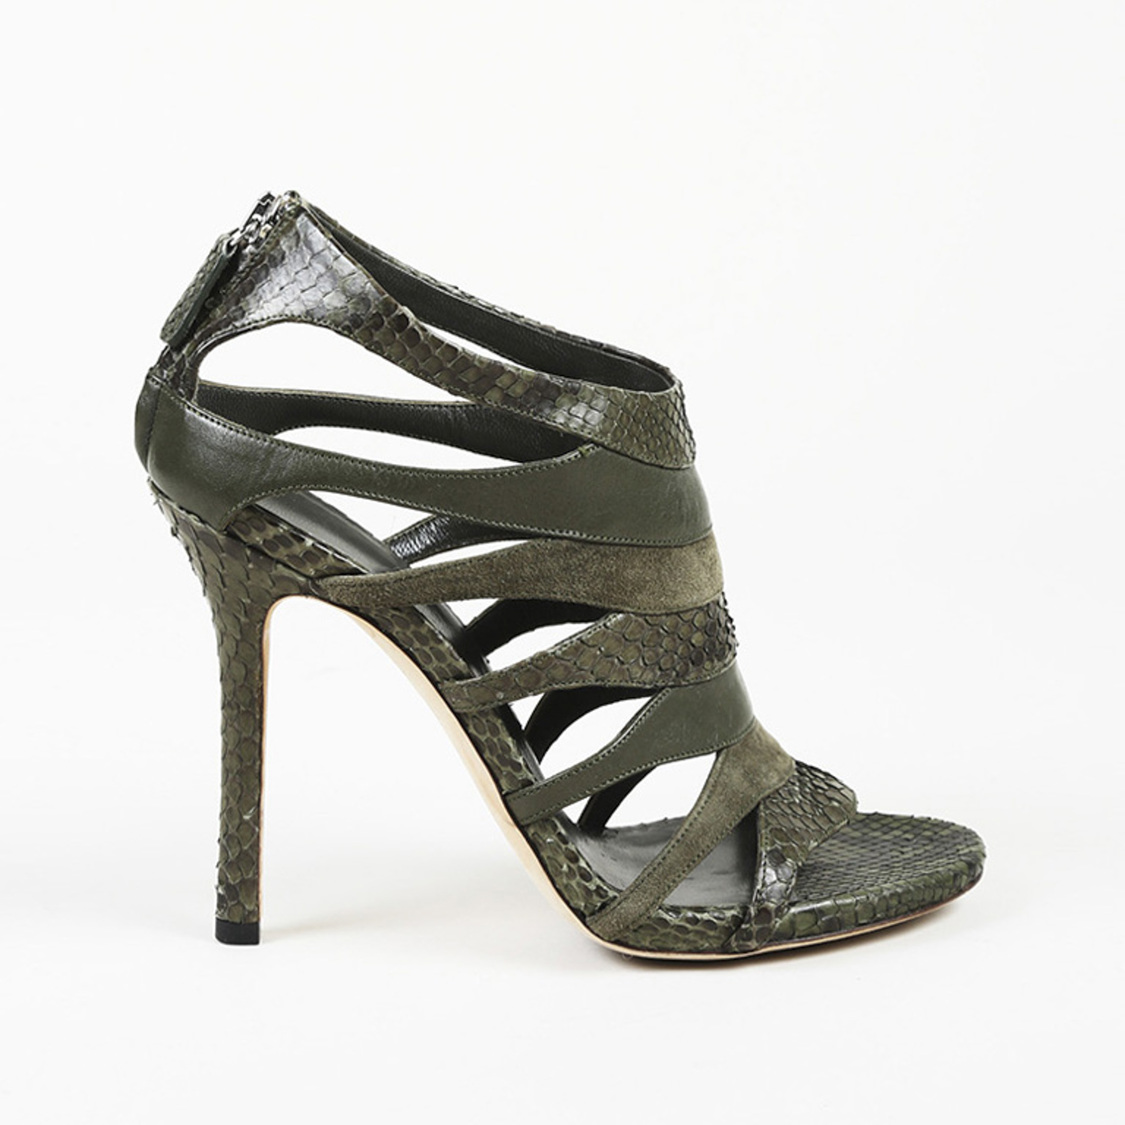 c5afb13e6fc2 Details about Gucci Green Snakeskin Leather Cage Sandals SZ 36.5